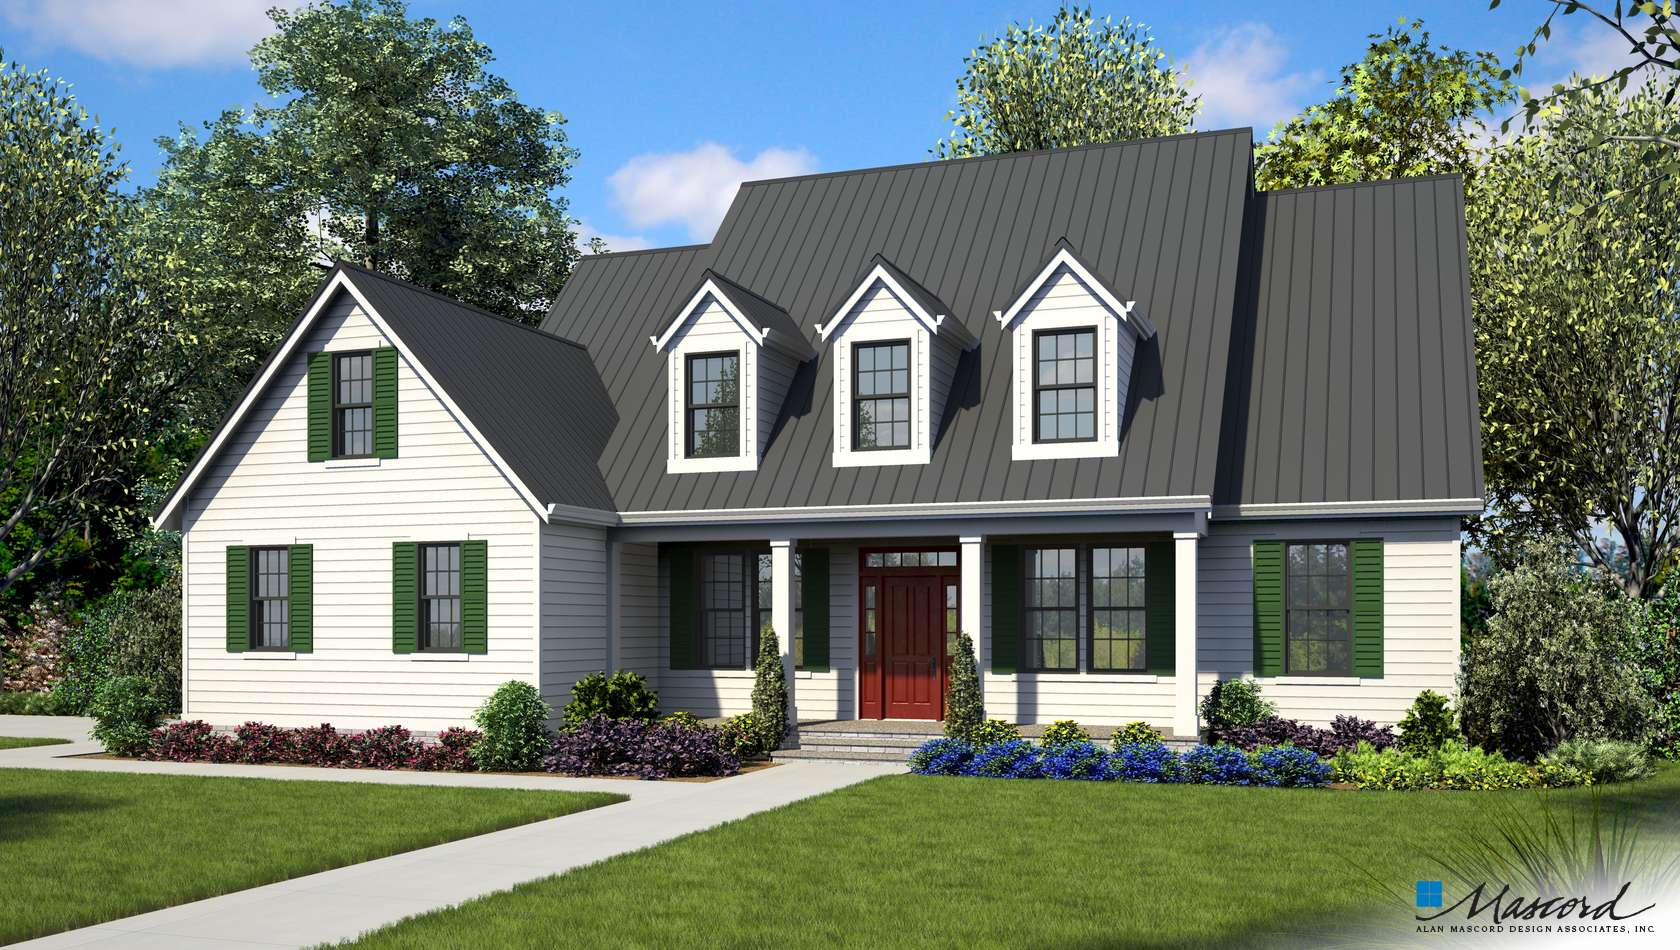 Main image for house plan 22121: The Everly